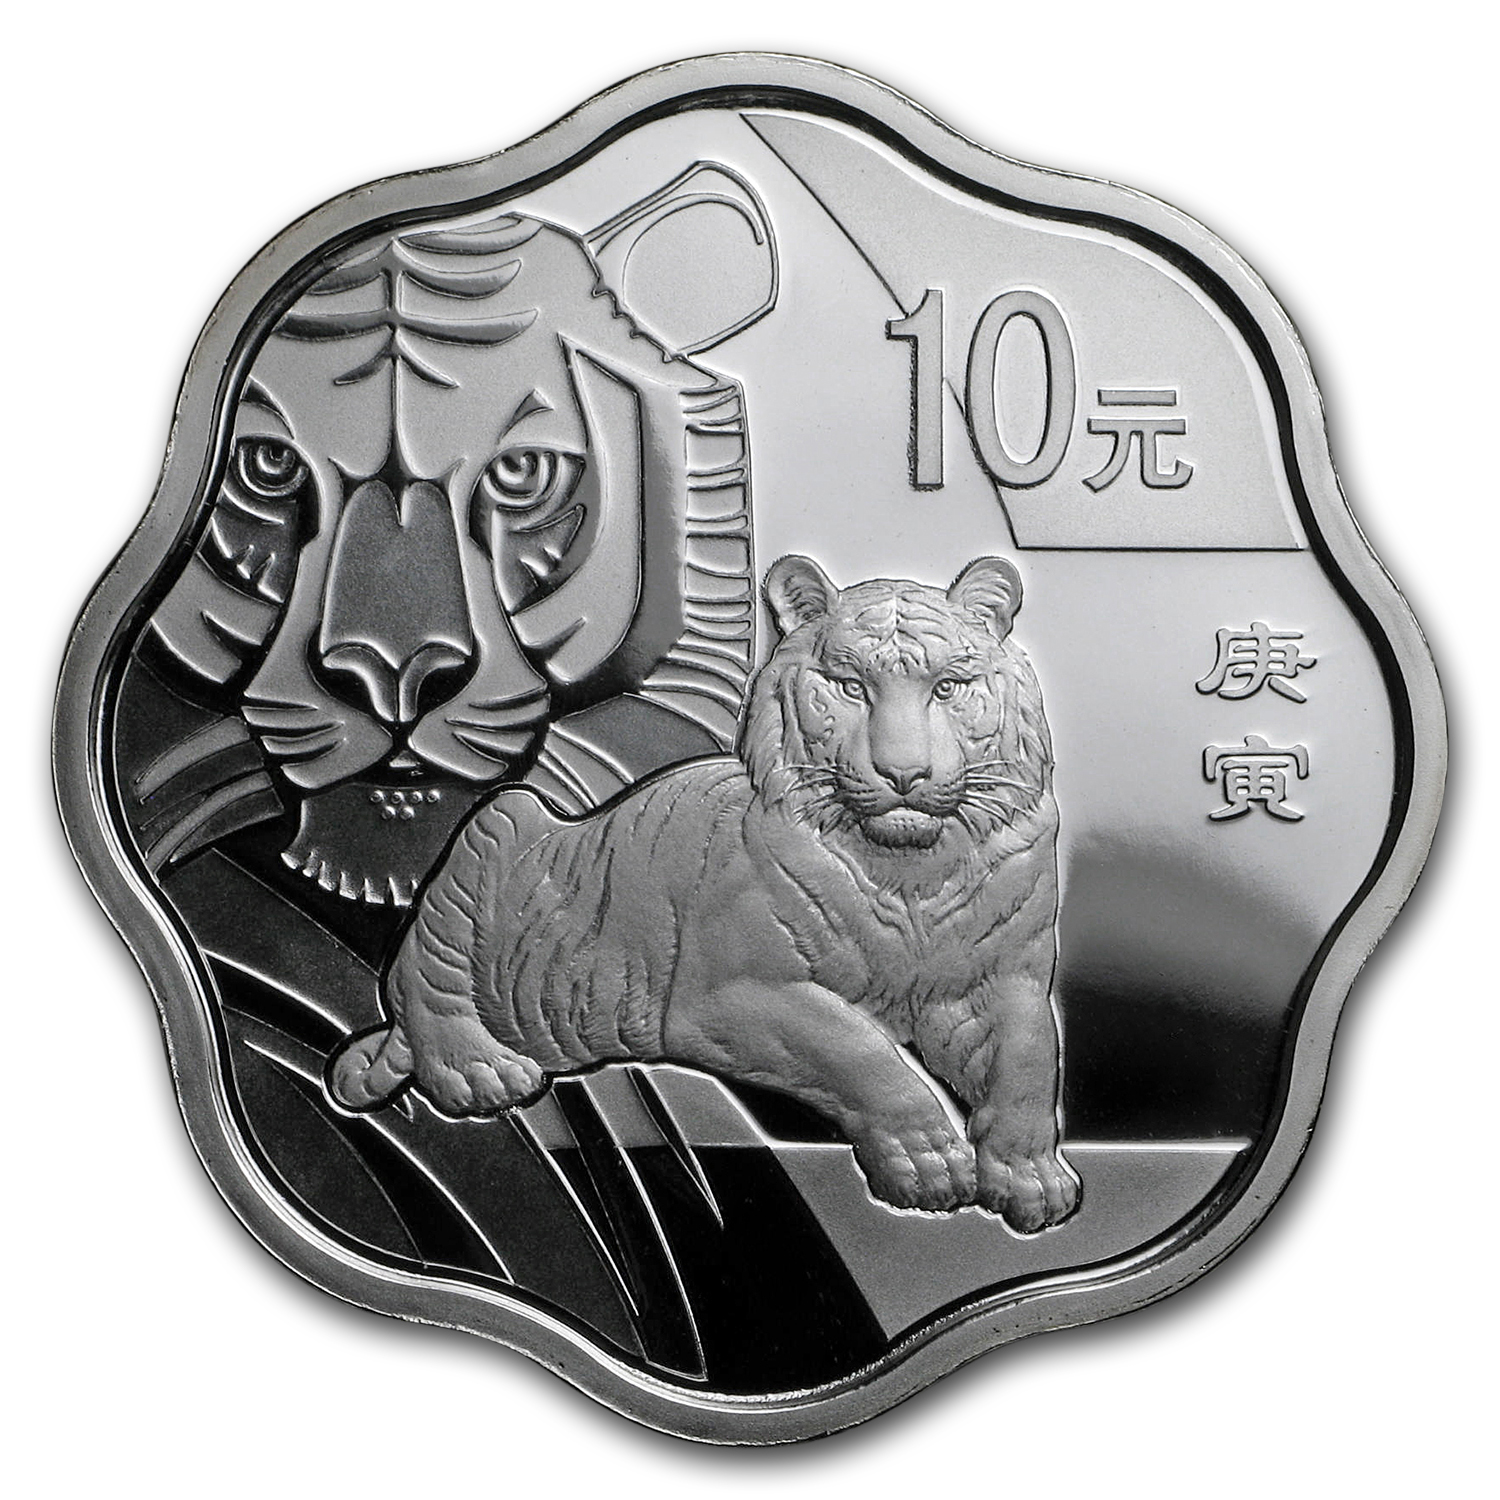 2010 Year of the Tiger - 1 oz Silver - Flower Coin (w/Box & CoA)